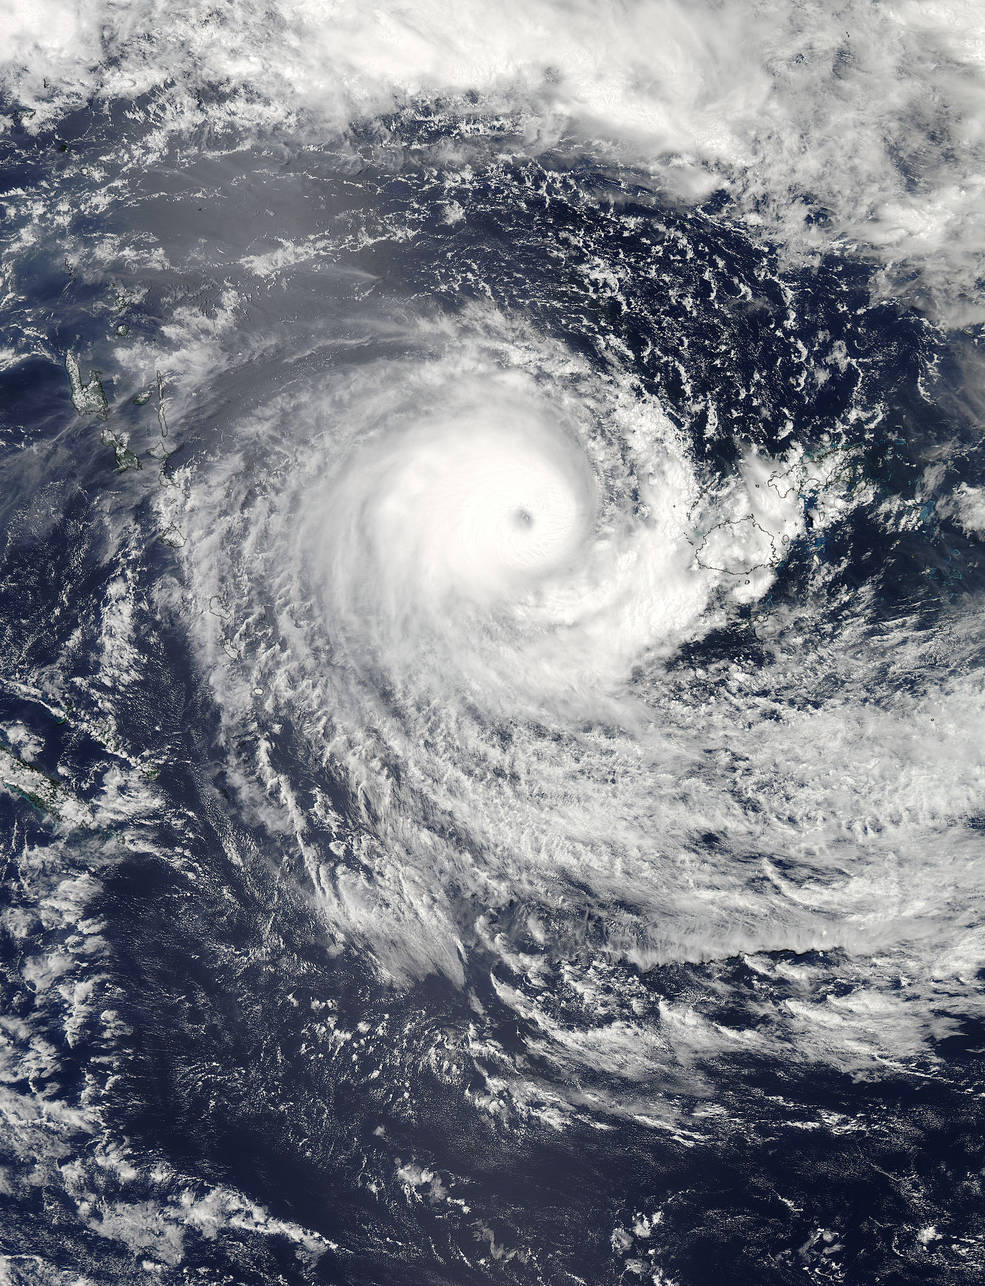 hight resolution of monster cyclone winston seen from space photos